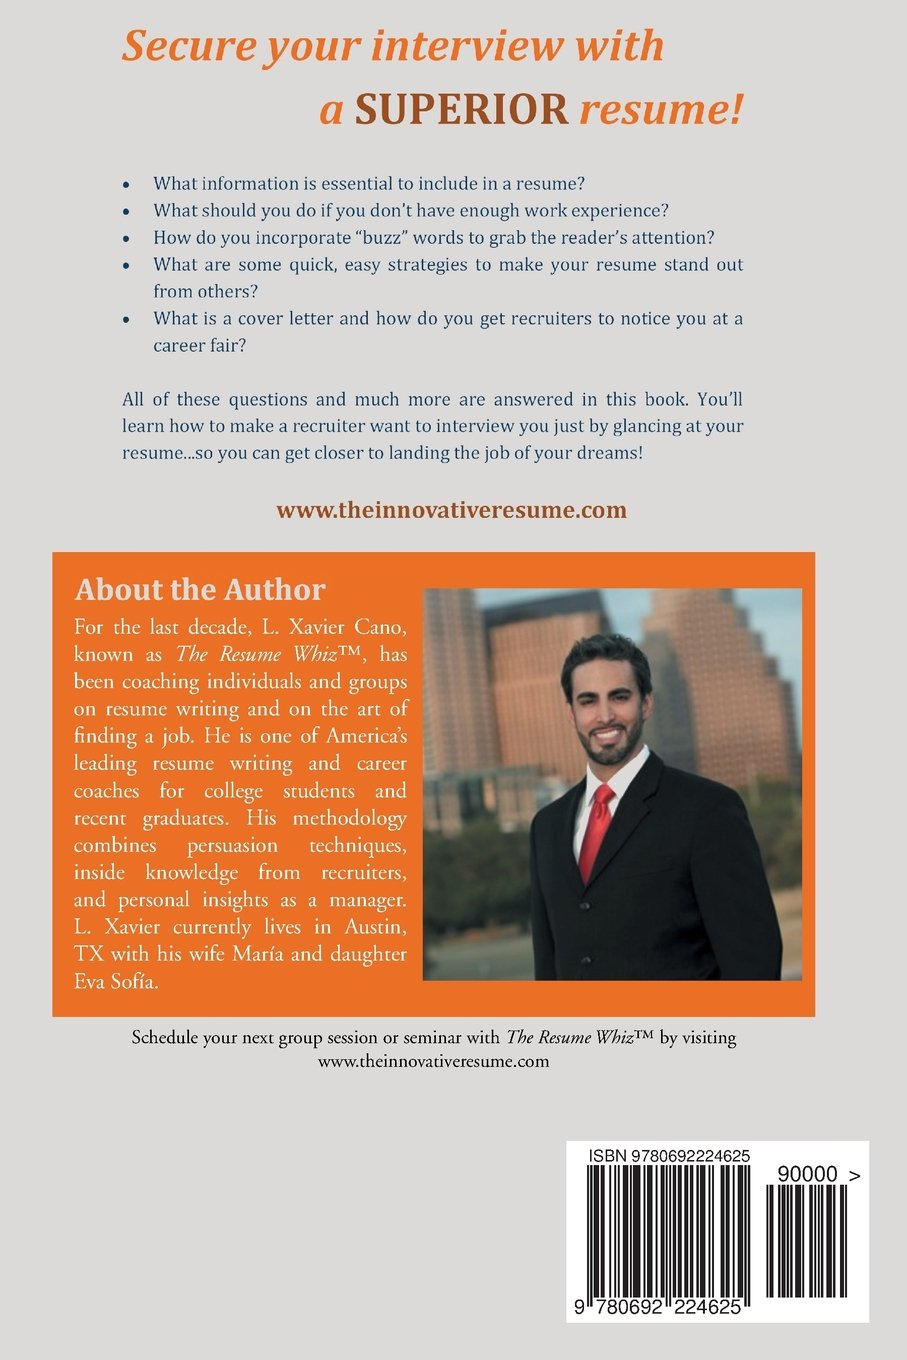 resume meet technology making your resume format machine - How To Make Your Resume Stand Out Get Your Resume Noticed